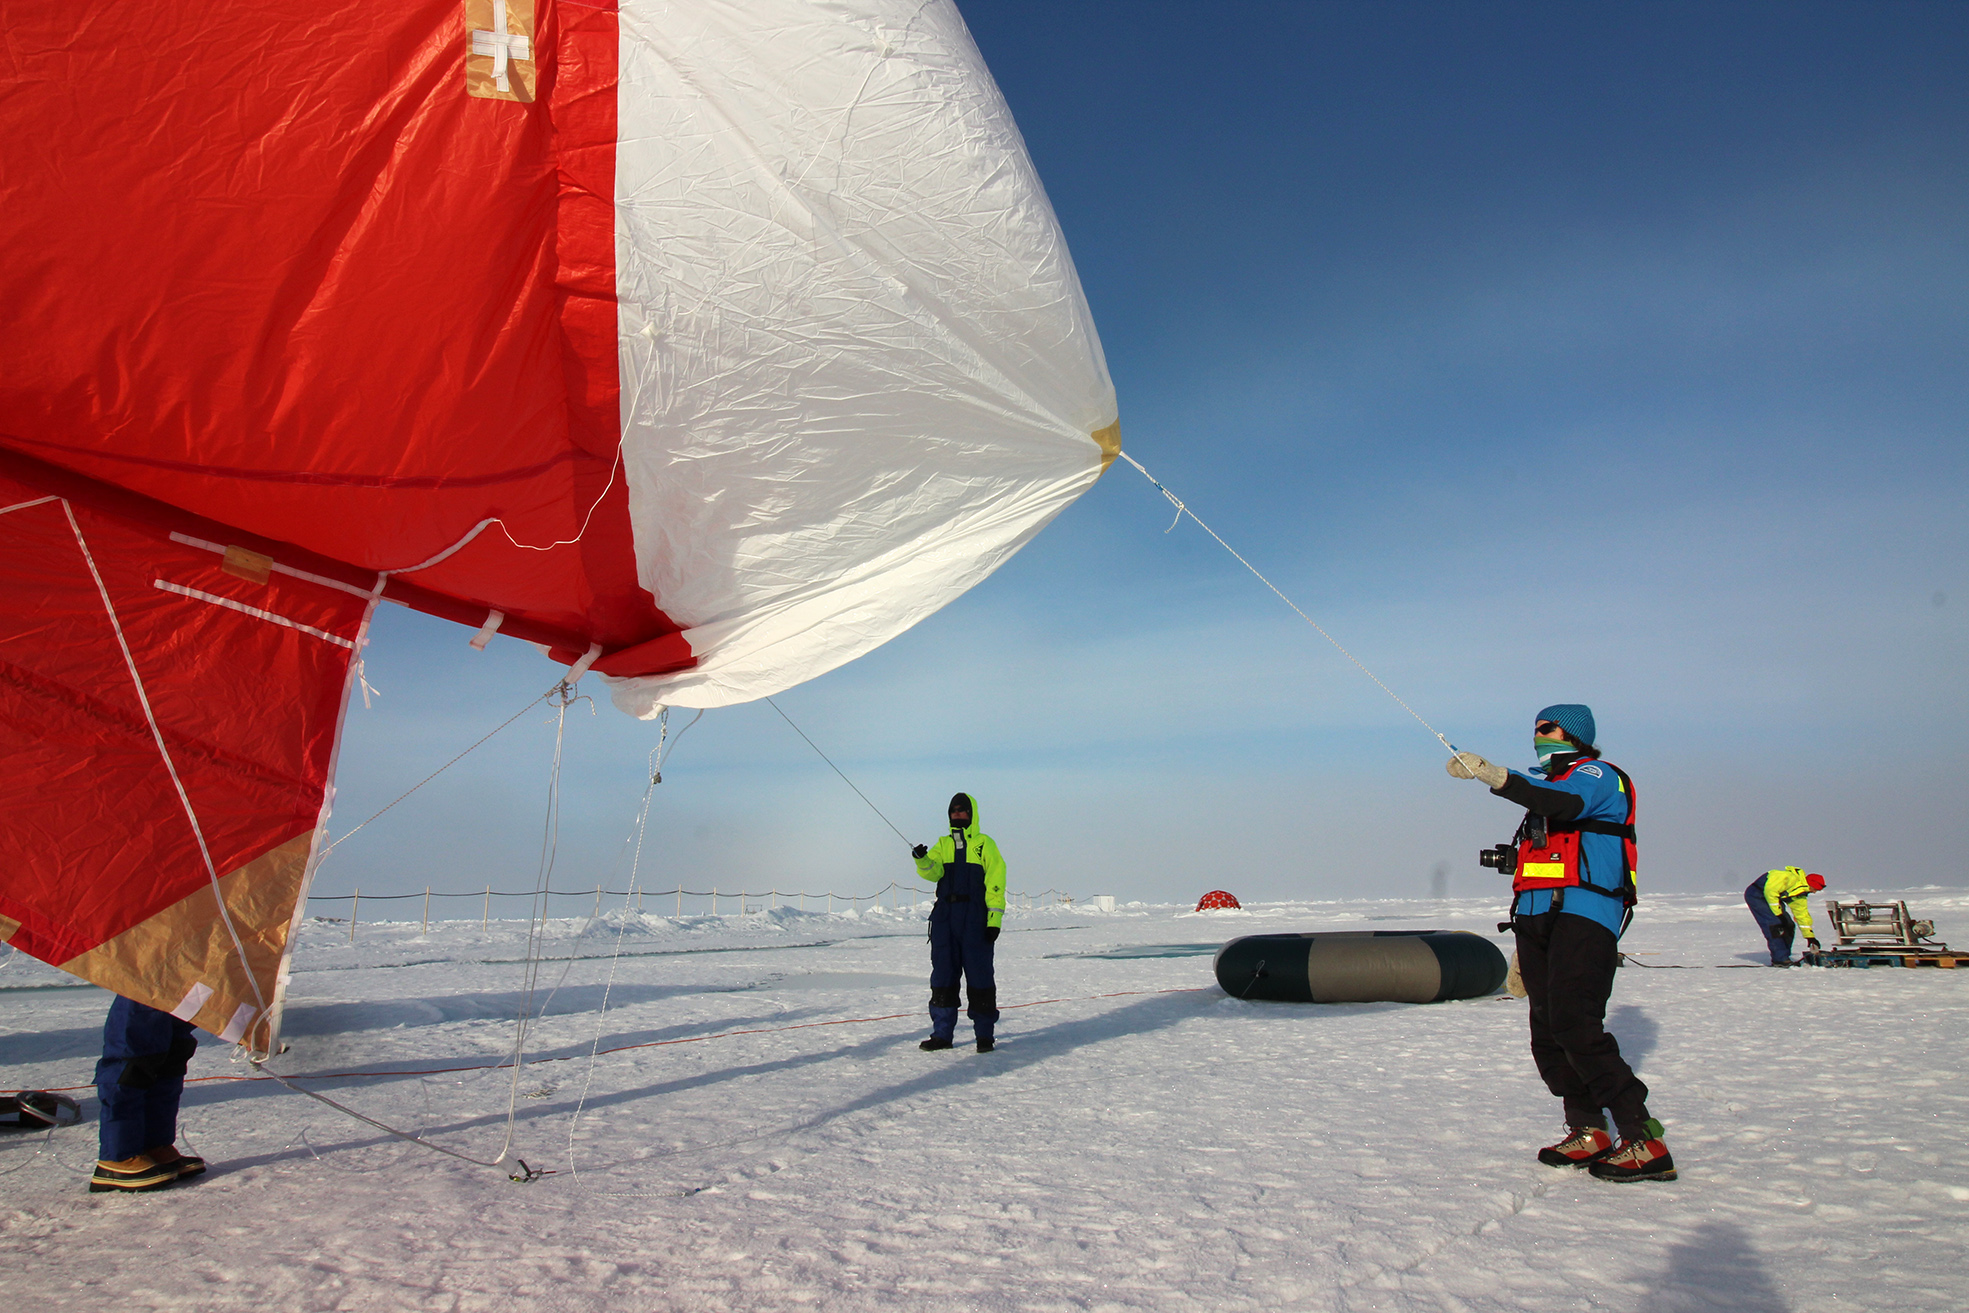 Inflating the balloon for collection of cloud droplets for post cruise determination of sugar molecules, proteins and information encoded in the DNA sequence of the marine microorganisms. Photo: Julika Zinke